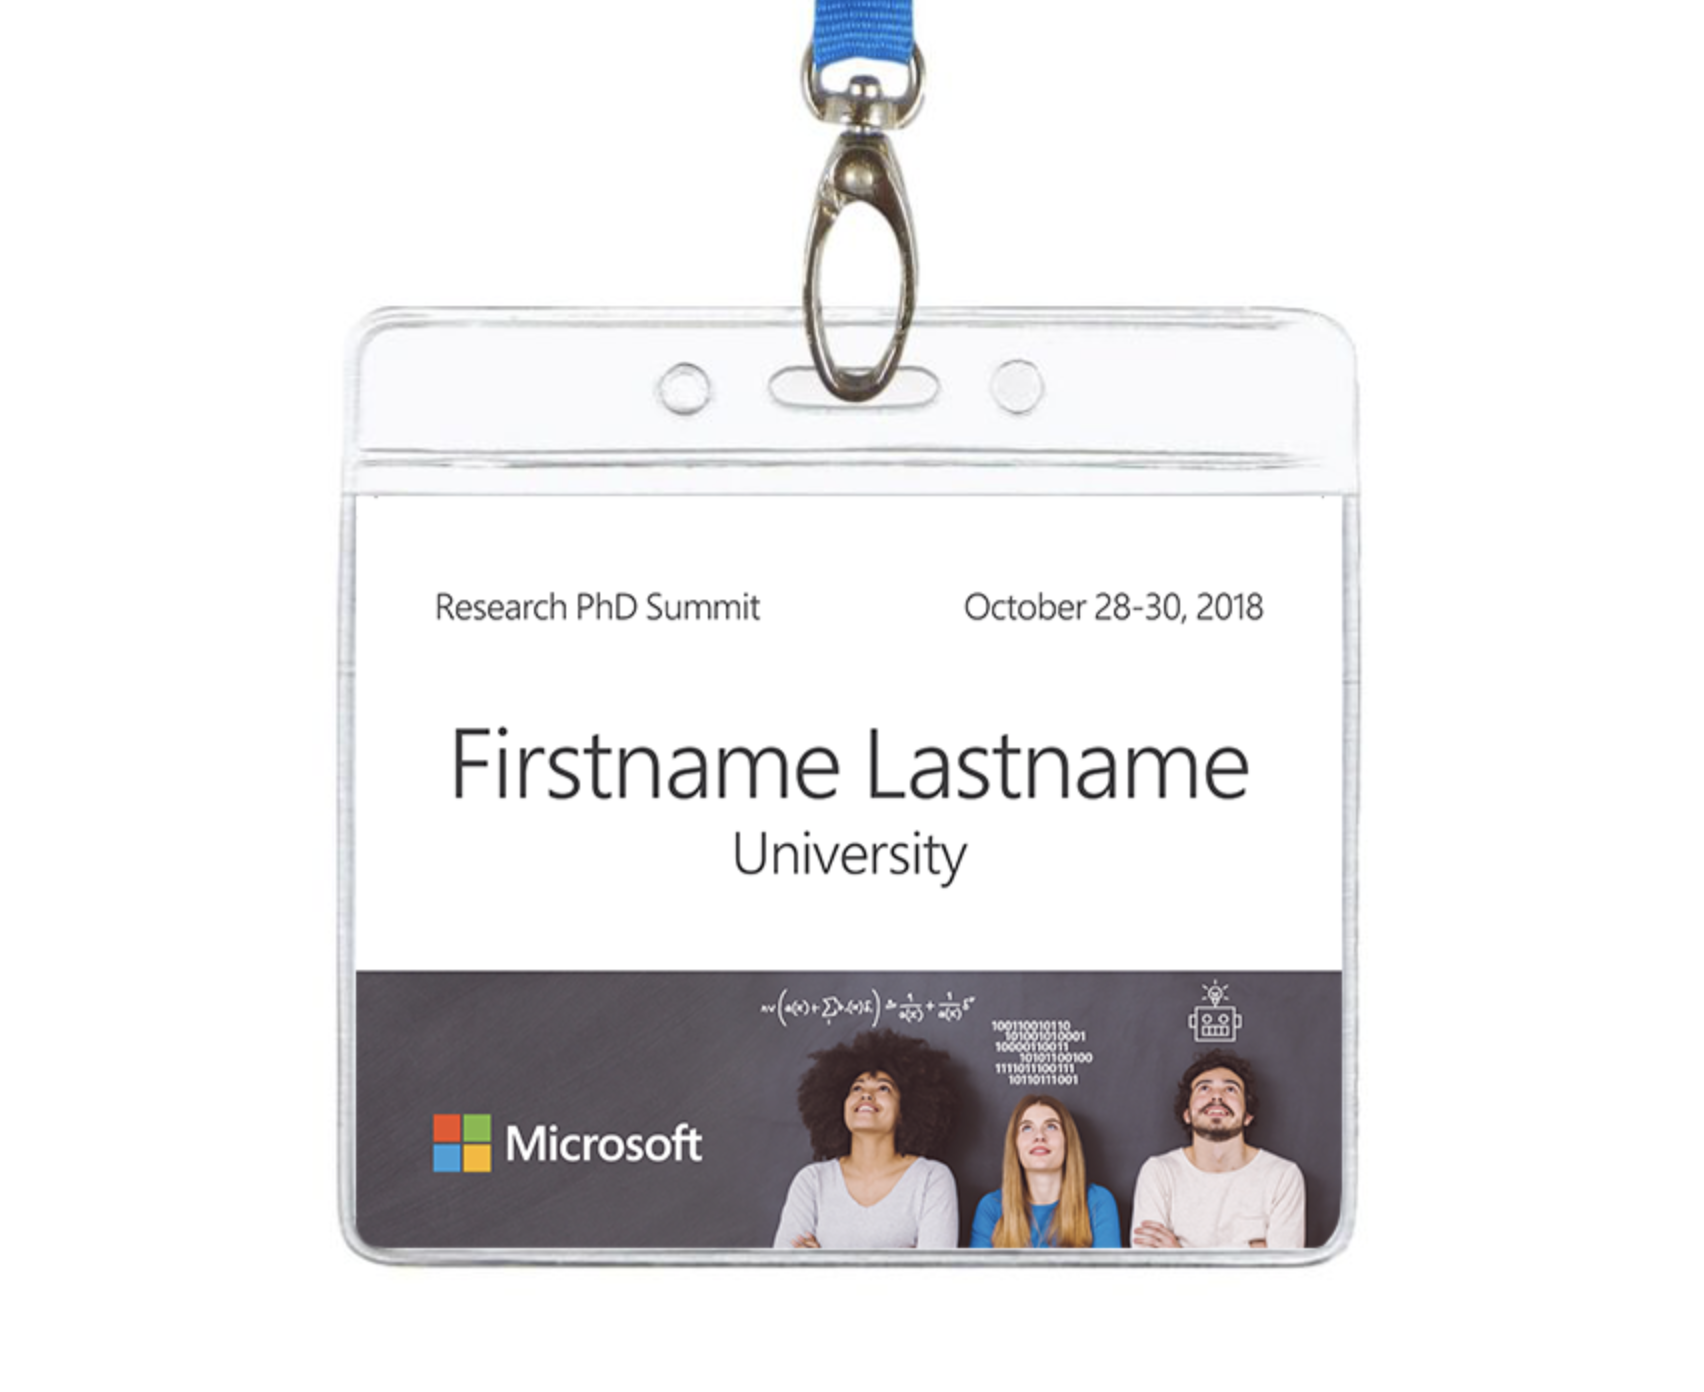 2018 PhD Summit Power Point name badge template.